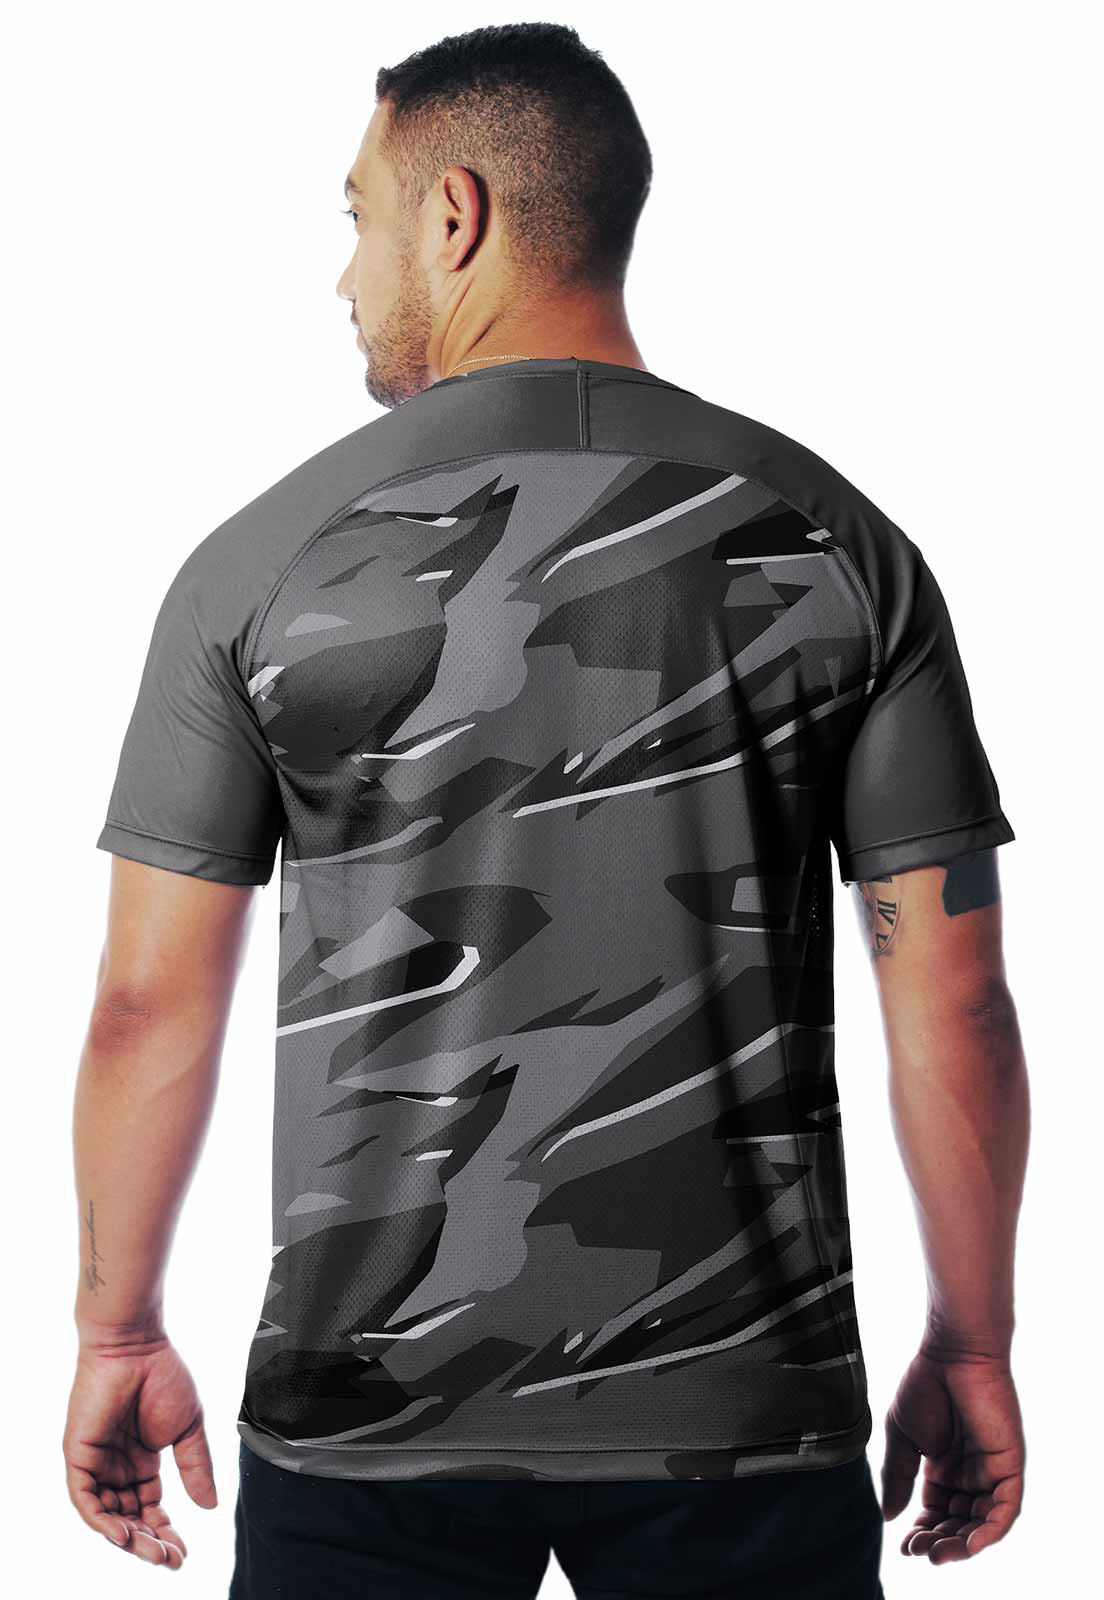 CAMISETA CAMUFLADA PARABELLUM DIA 03 MANGA CURTA MASCULINA  - REAL HUNTER OUTDOORS